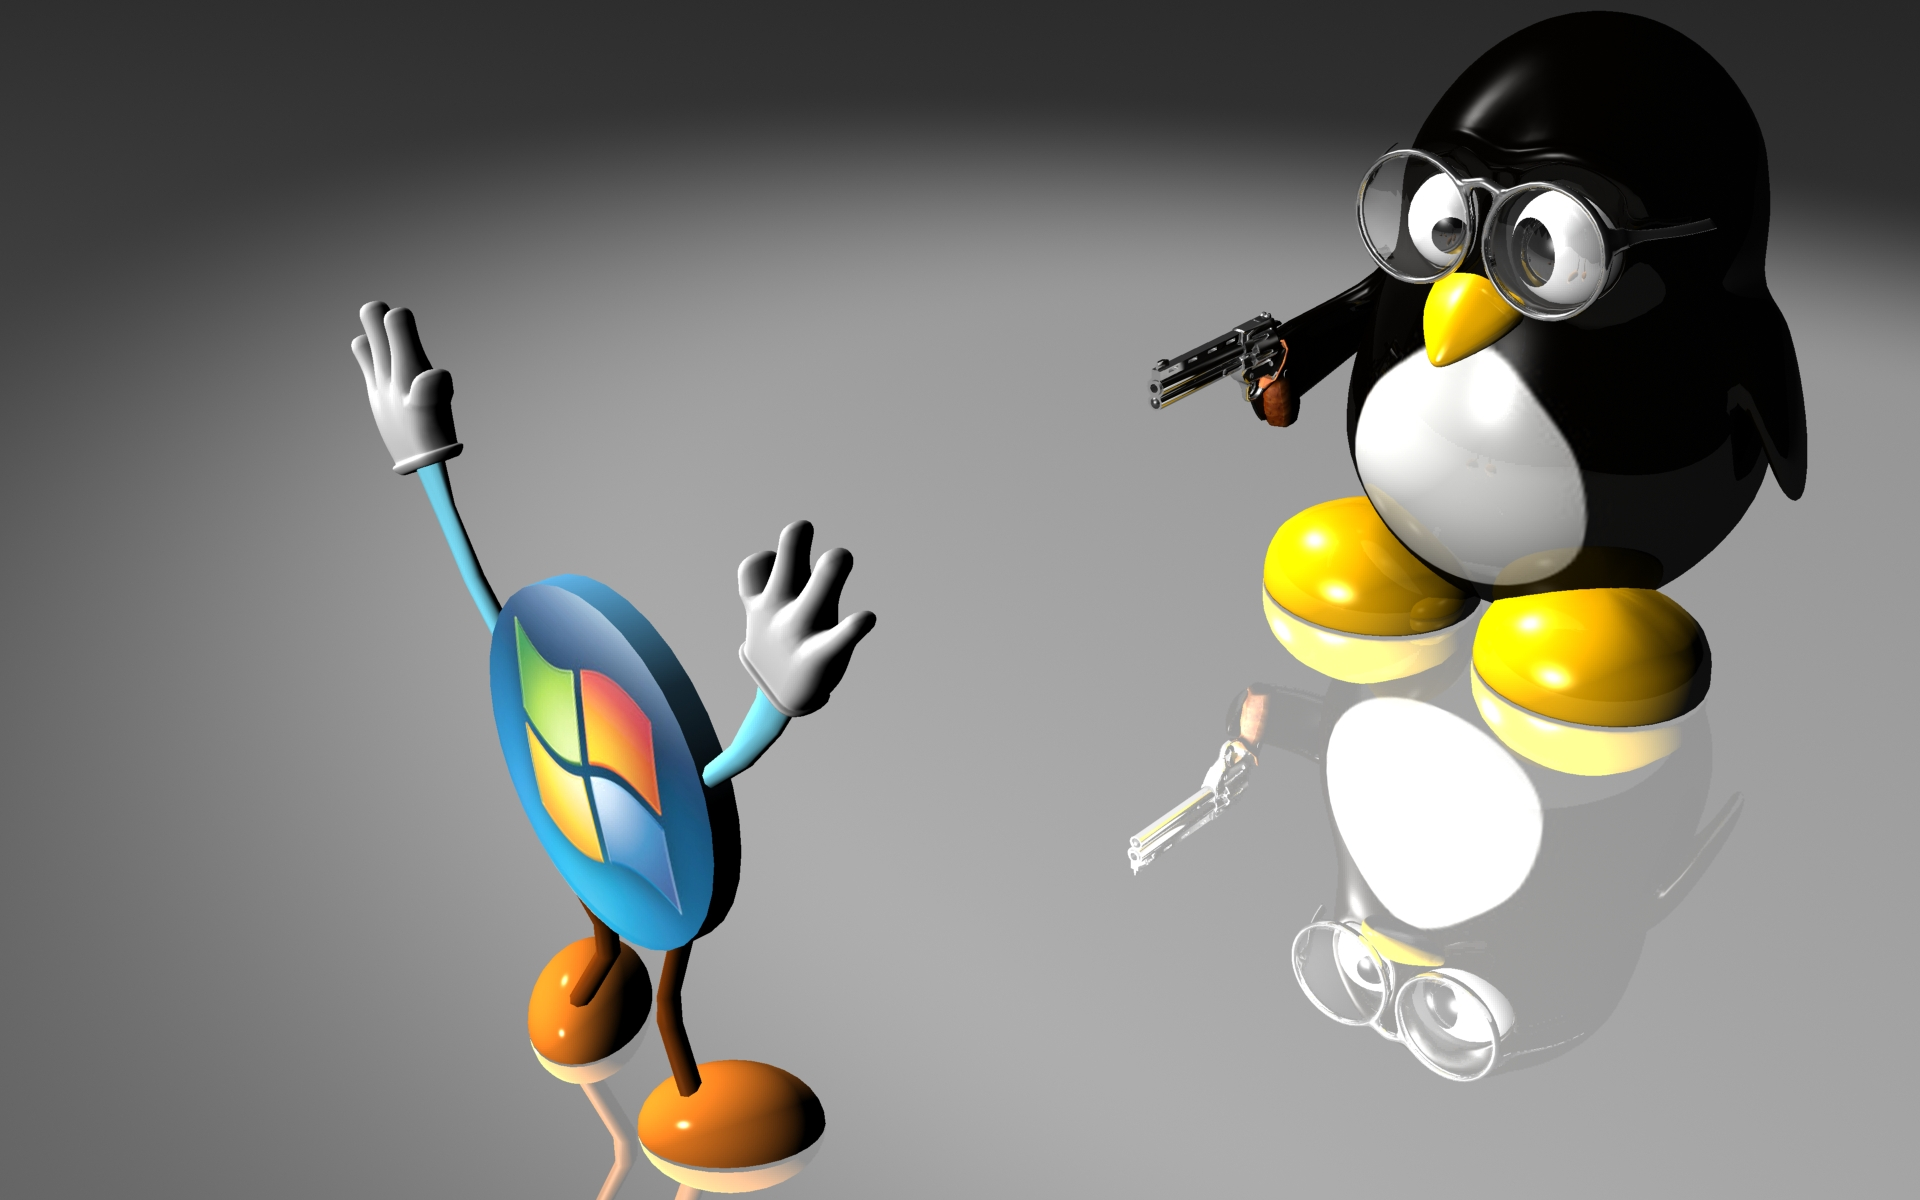 Technology - Linux  Penguin Tree Save Blue Fight Gun Humor Products Windows Wallpaper